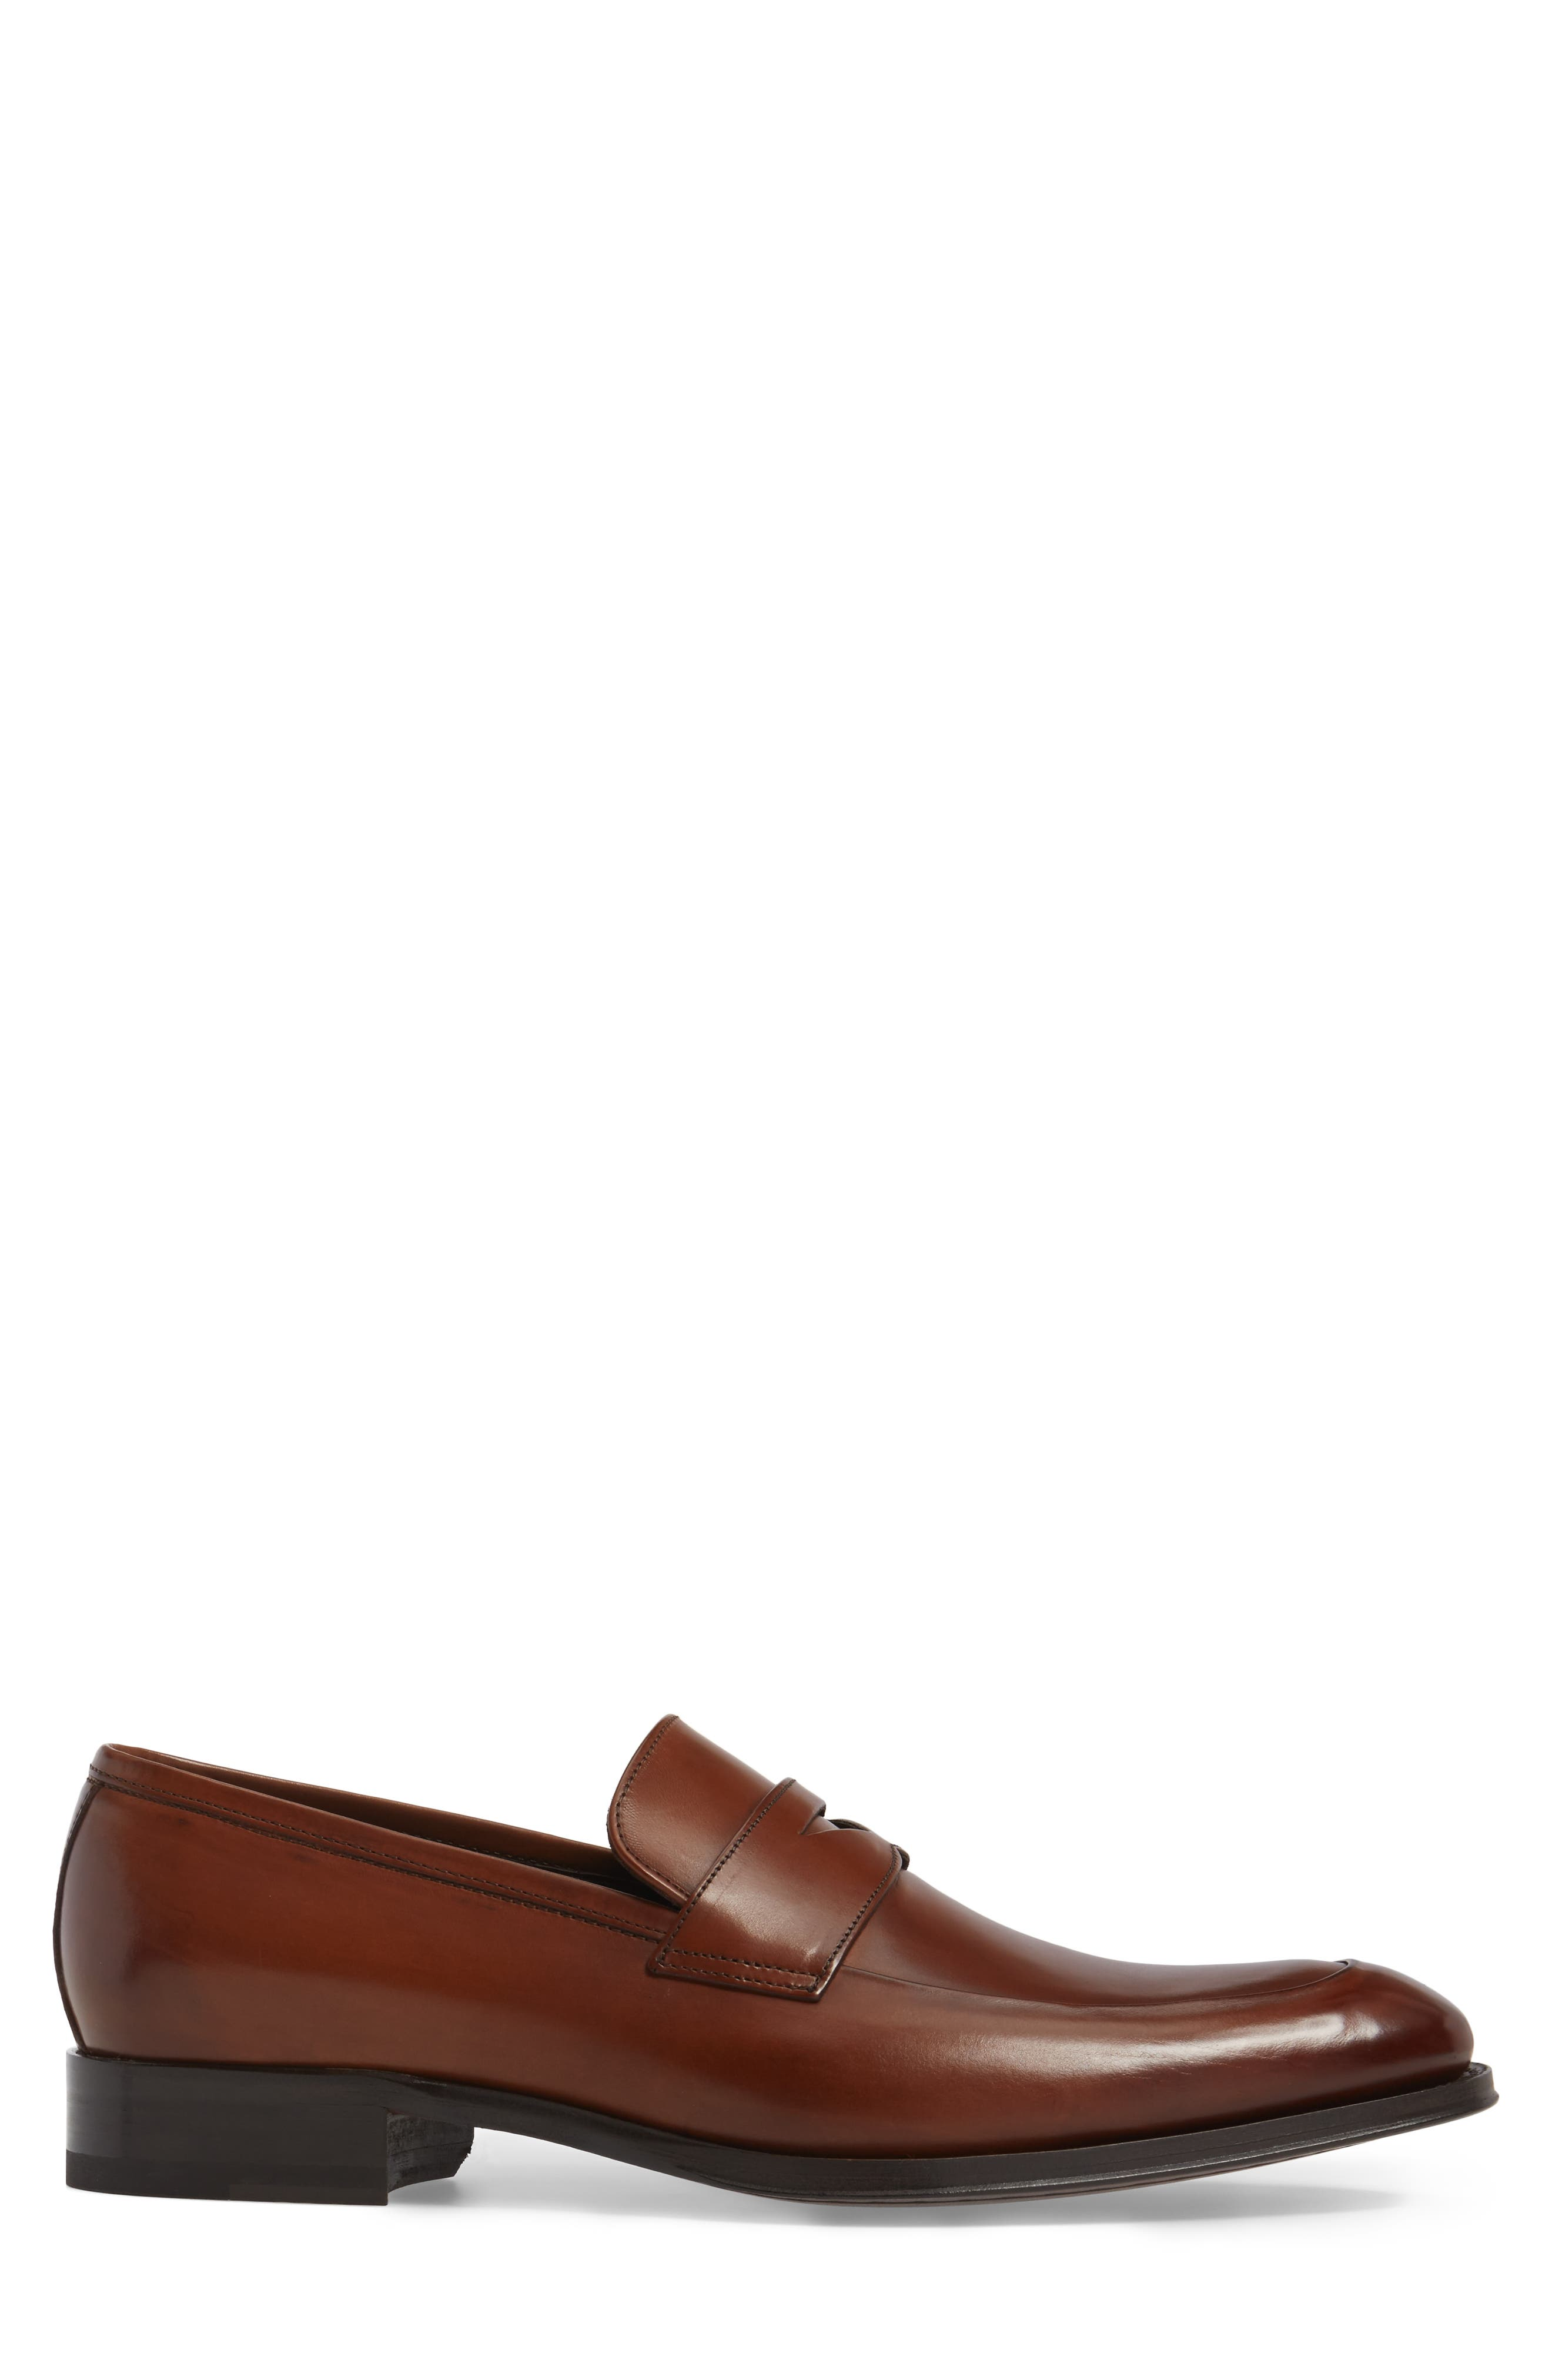 Francis Penny Loafer,                             Alternate thumbnail 3, color,                             Brown Leather